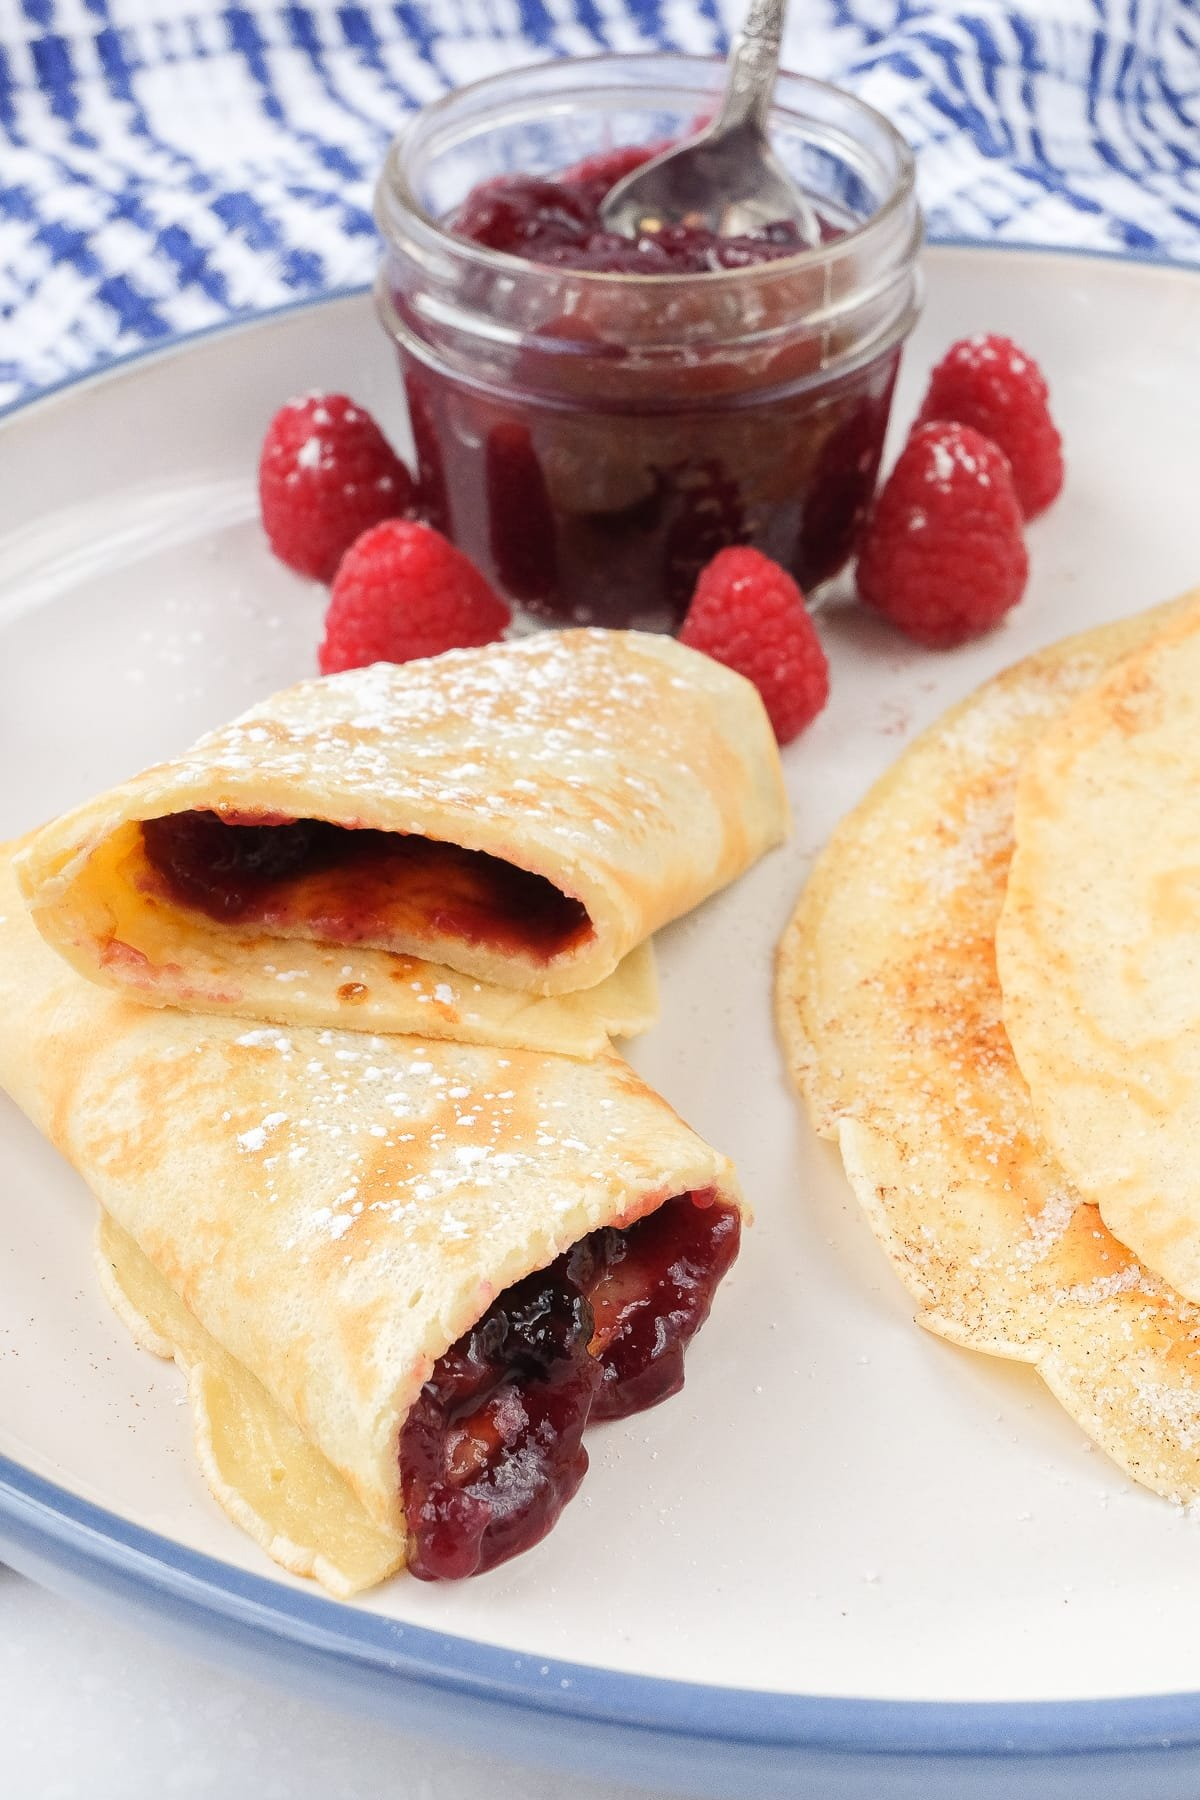 german pancake rolled with jam with berries and jam behind on plate